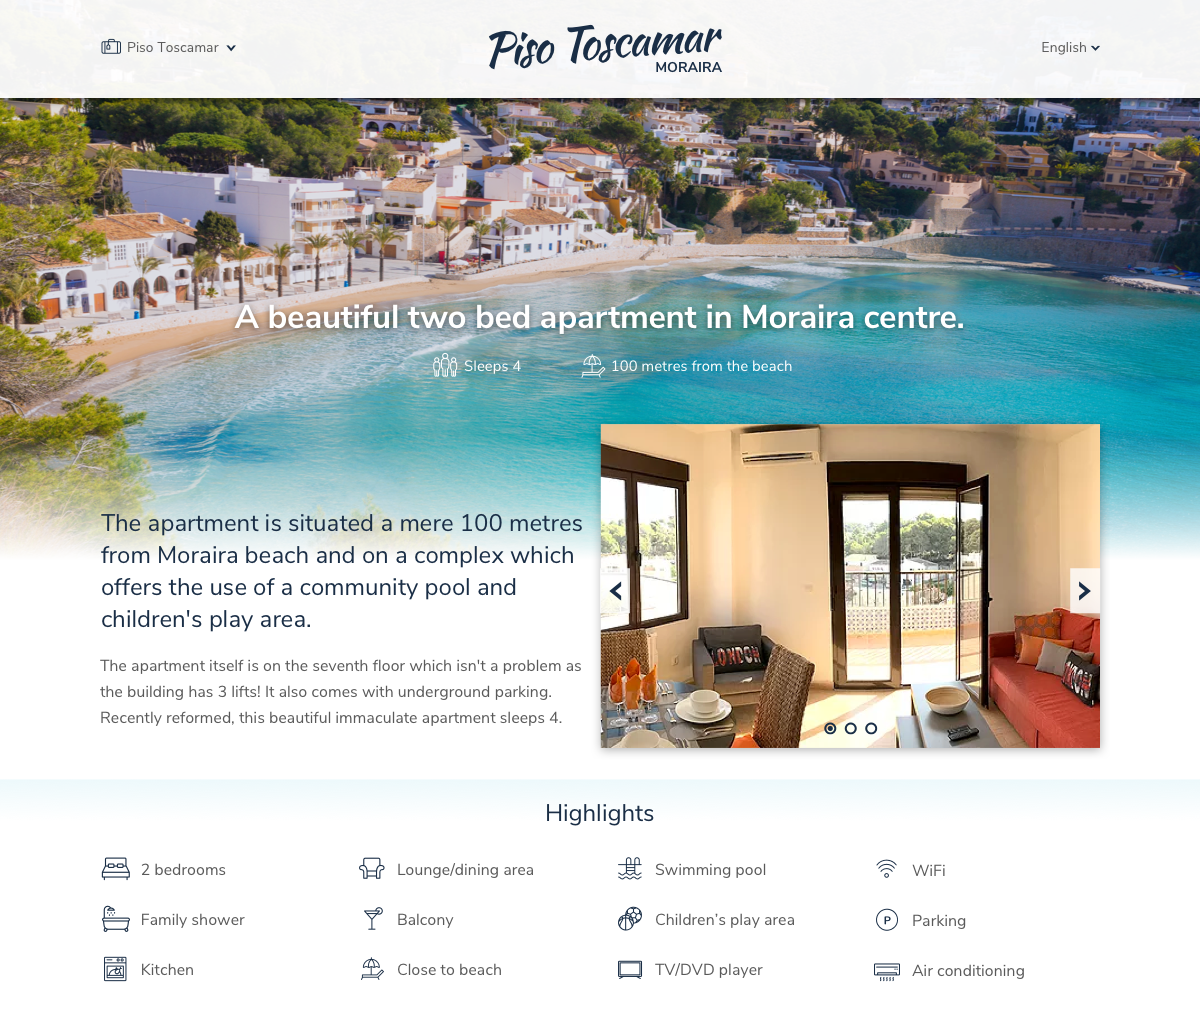 Design for a holiday rental website in Moraira, Spain